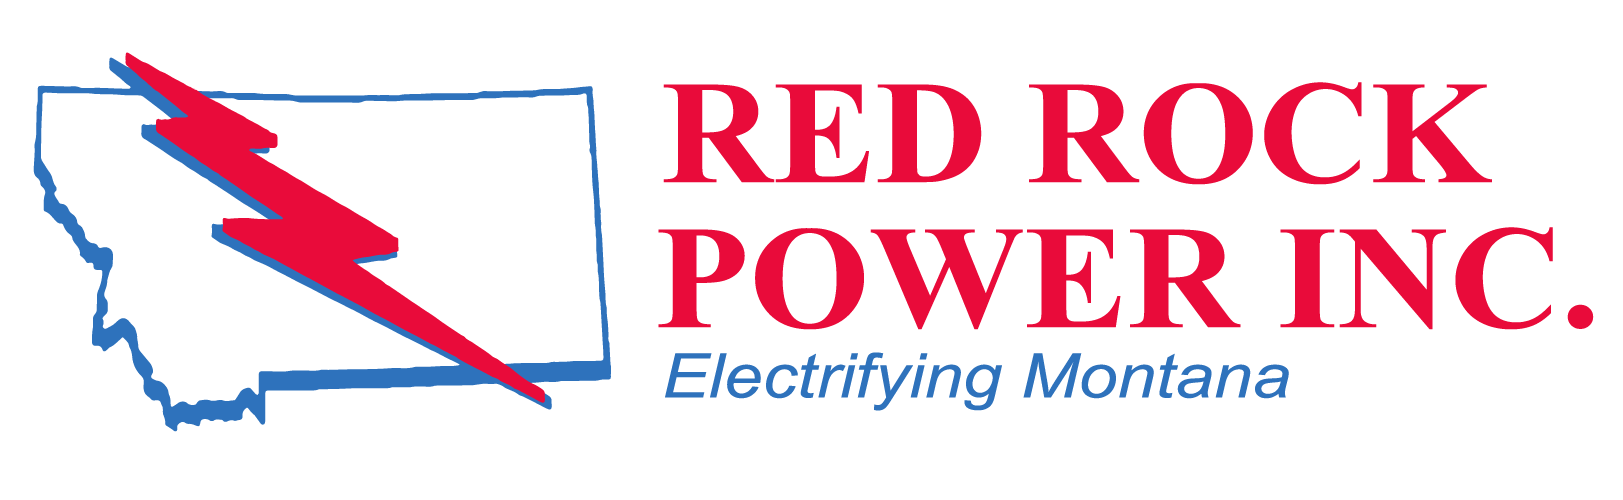 Red Rock Power Inc.